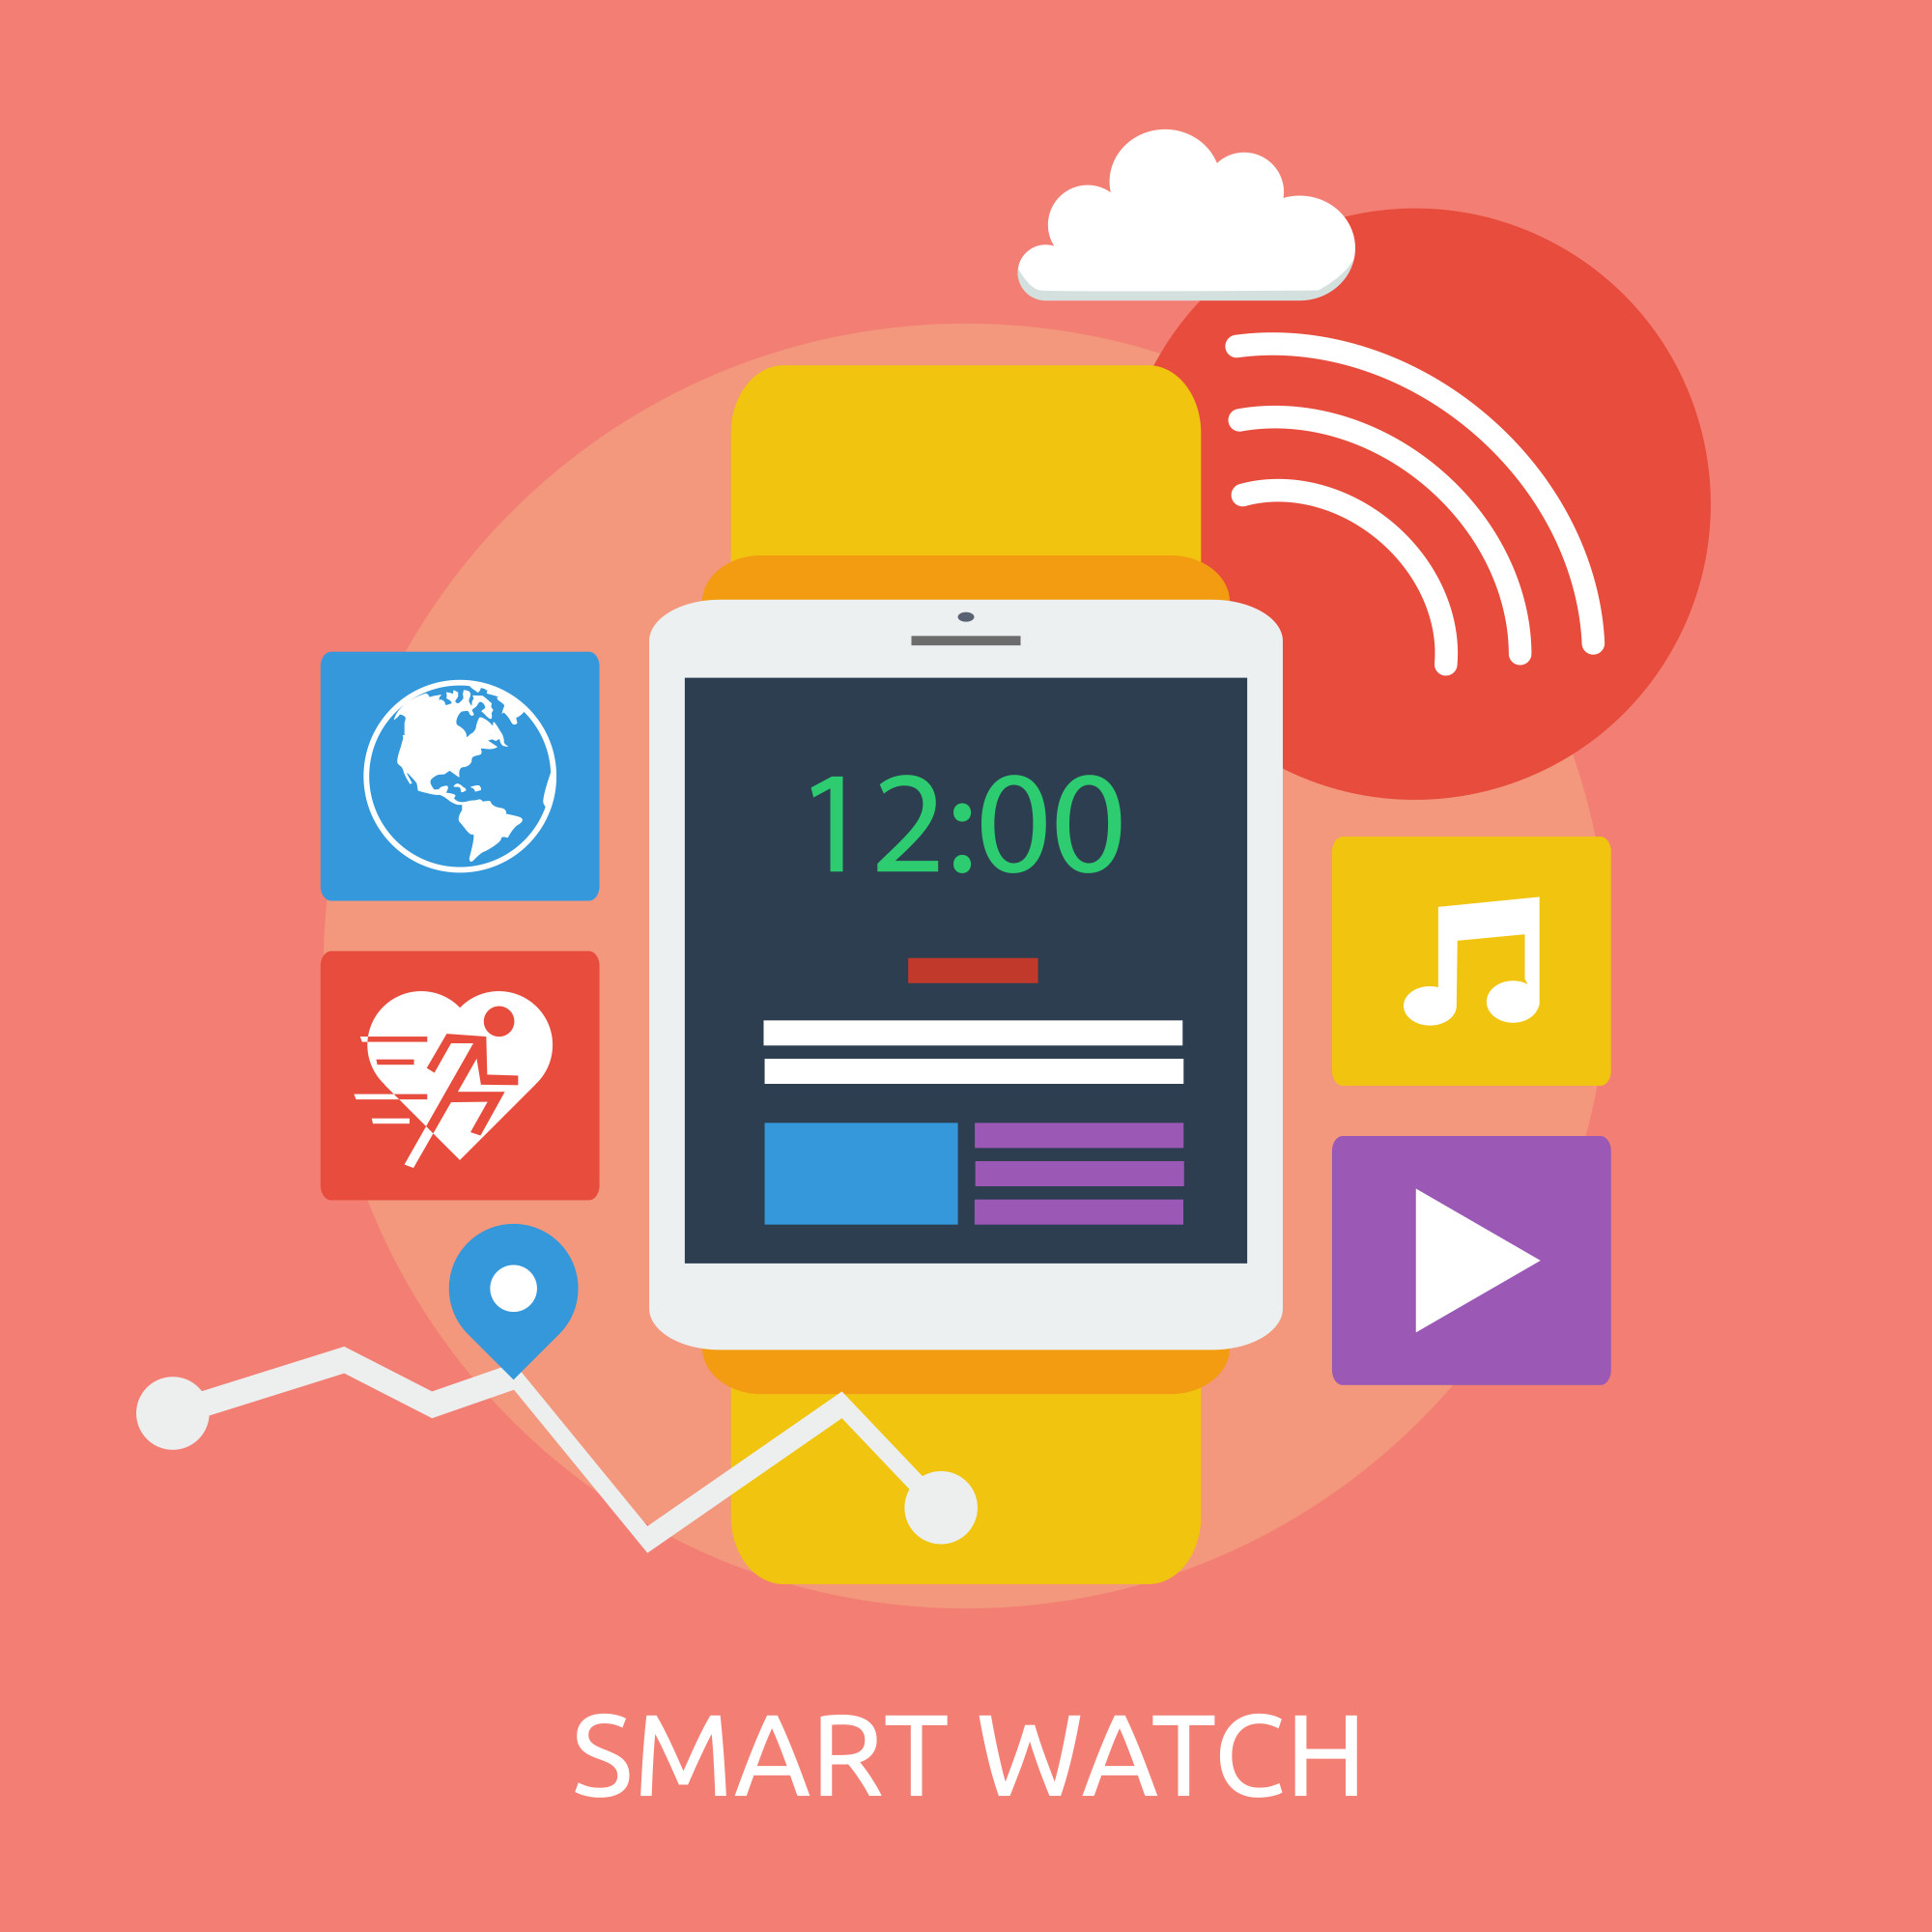 Smart Watch Conceptual